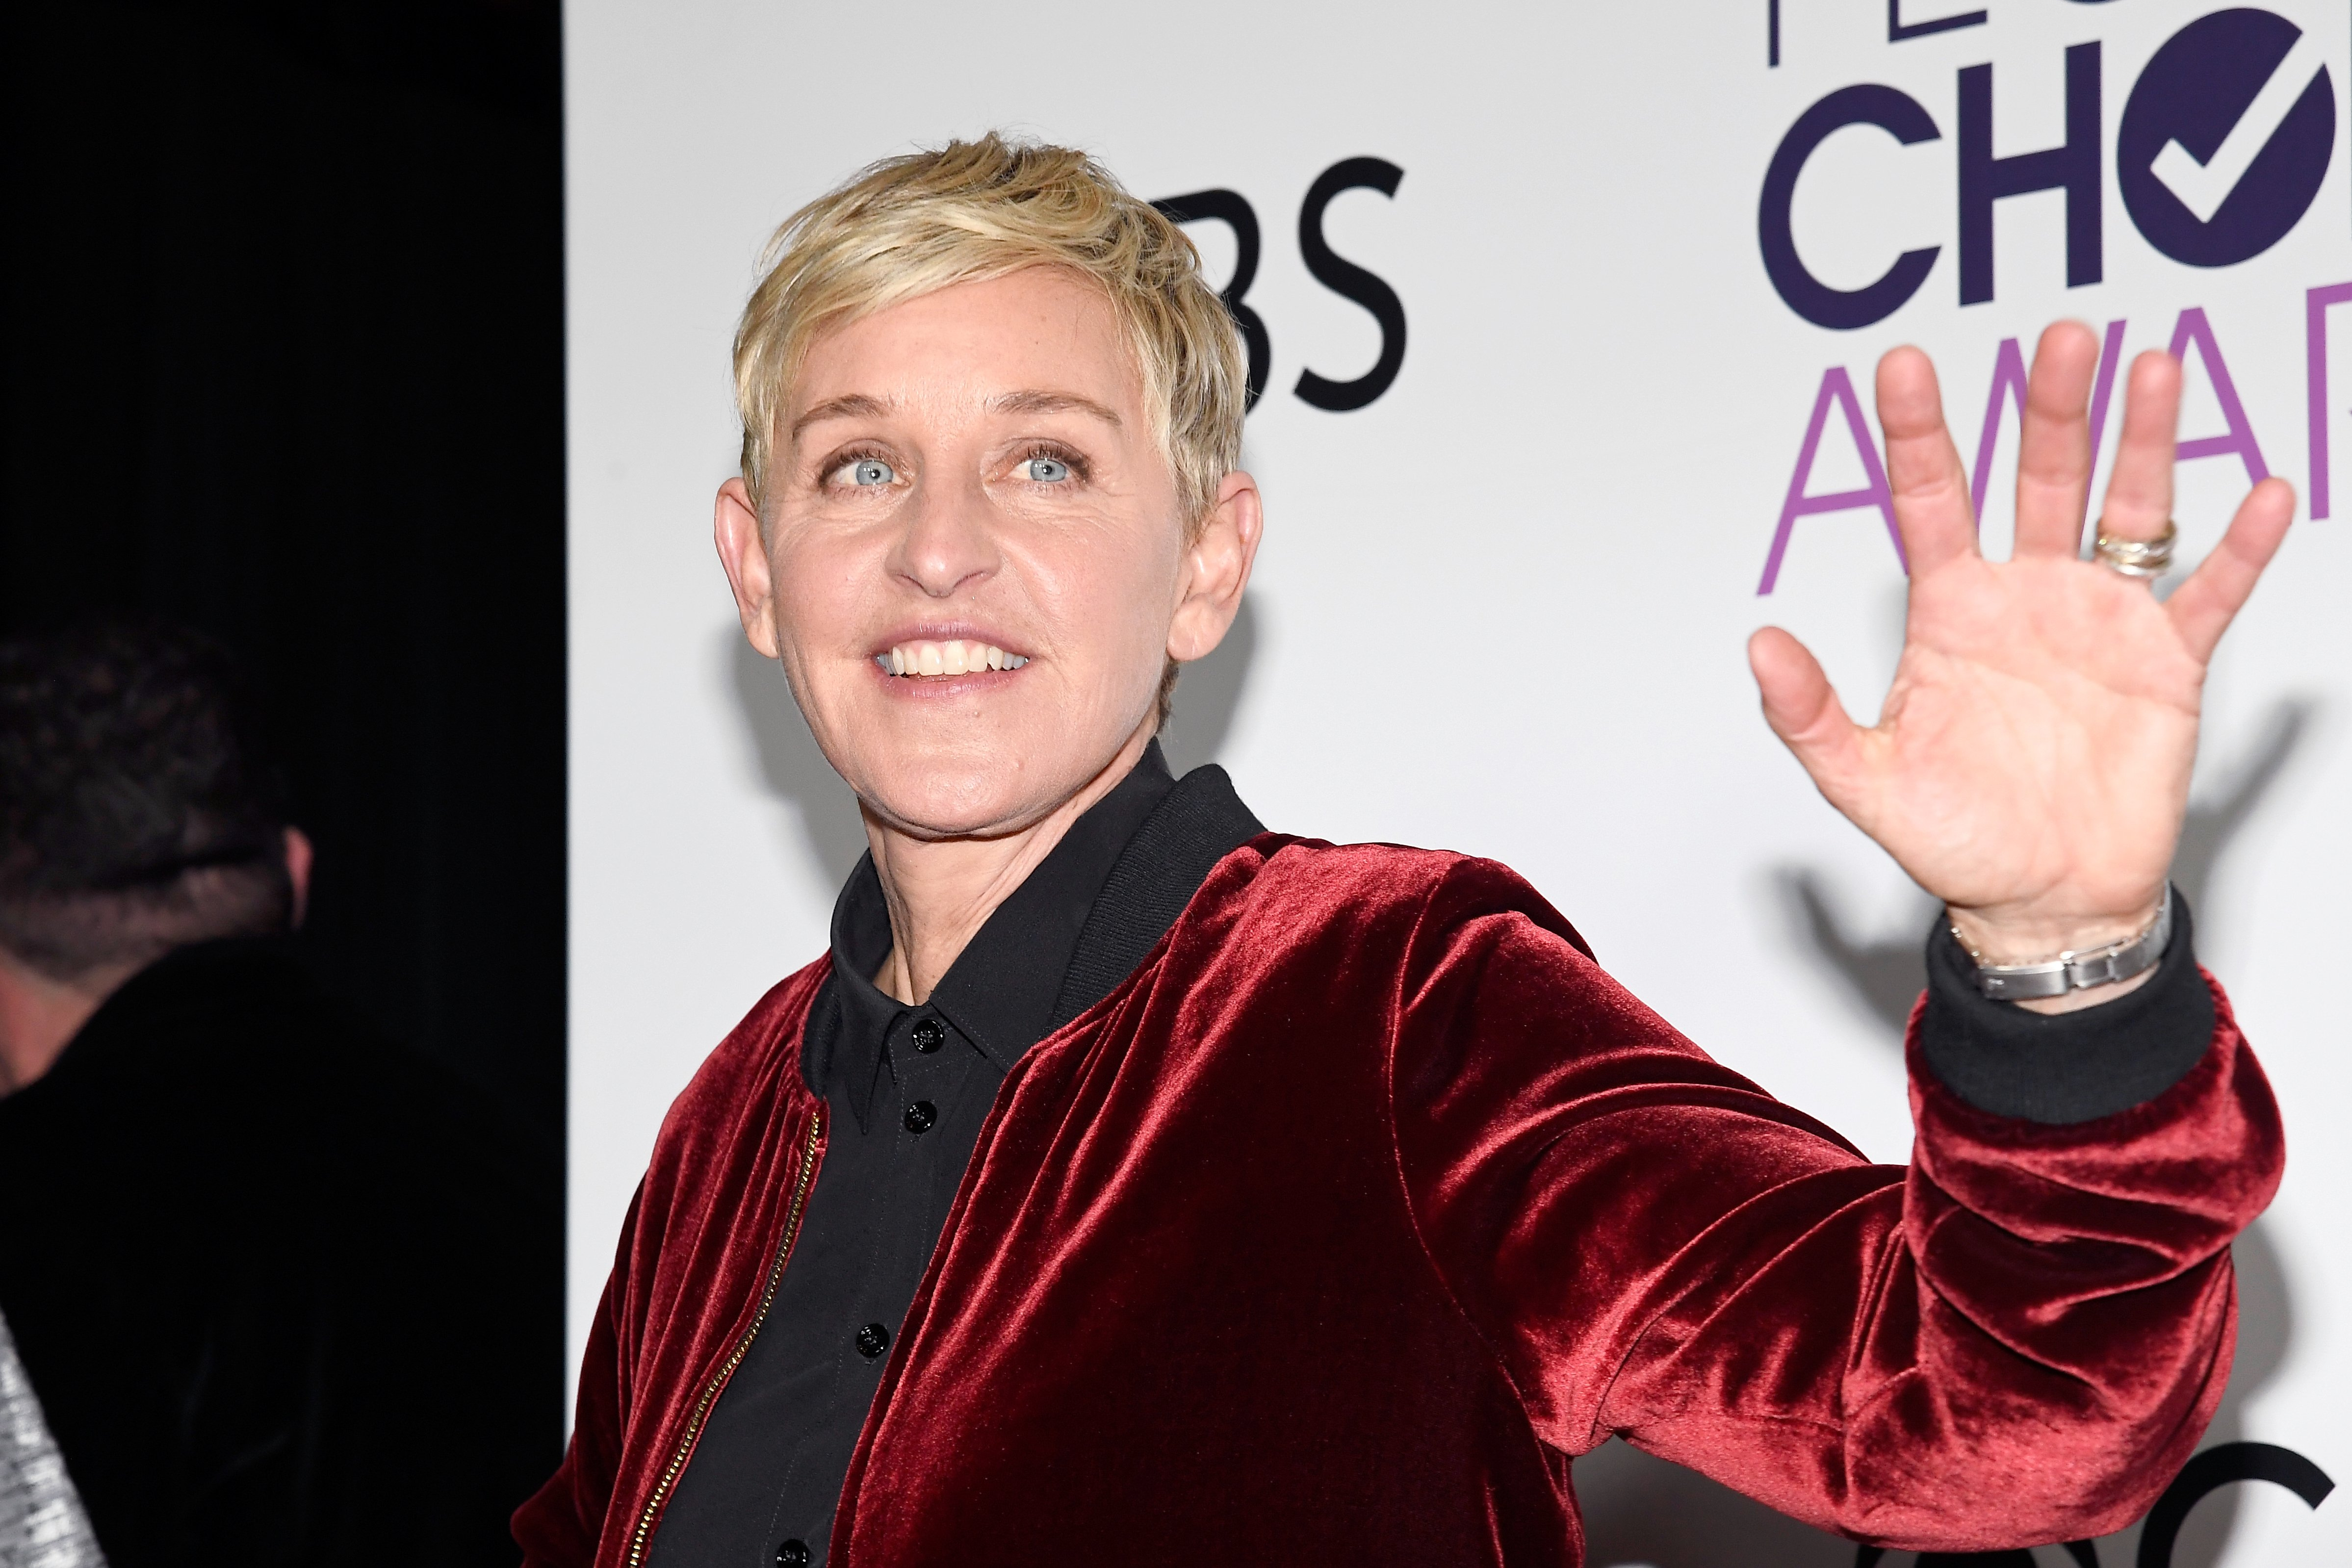 Ellen DeGeneres poses at the People's Choice Awards in Los Angeles, California on January 18, 2017   Photo: Getty Images